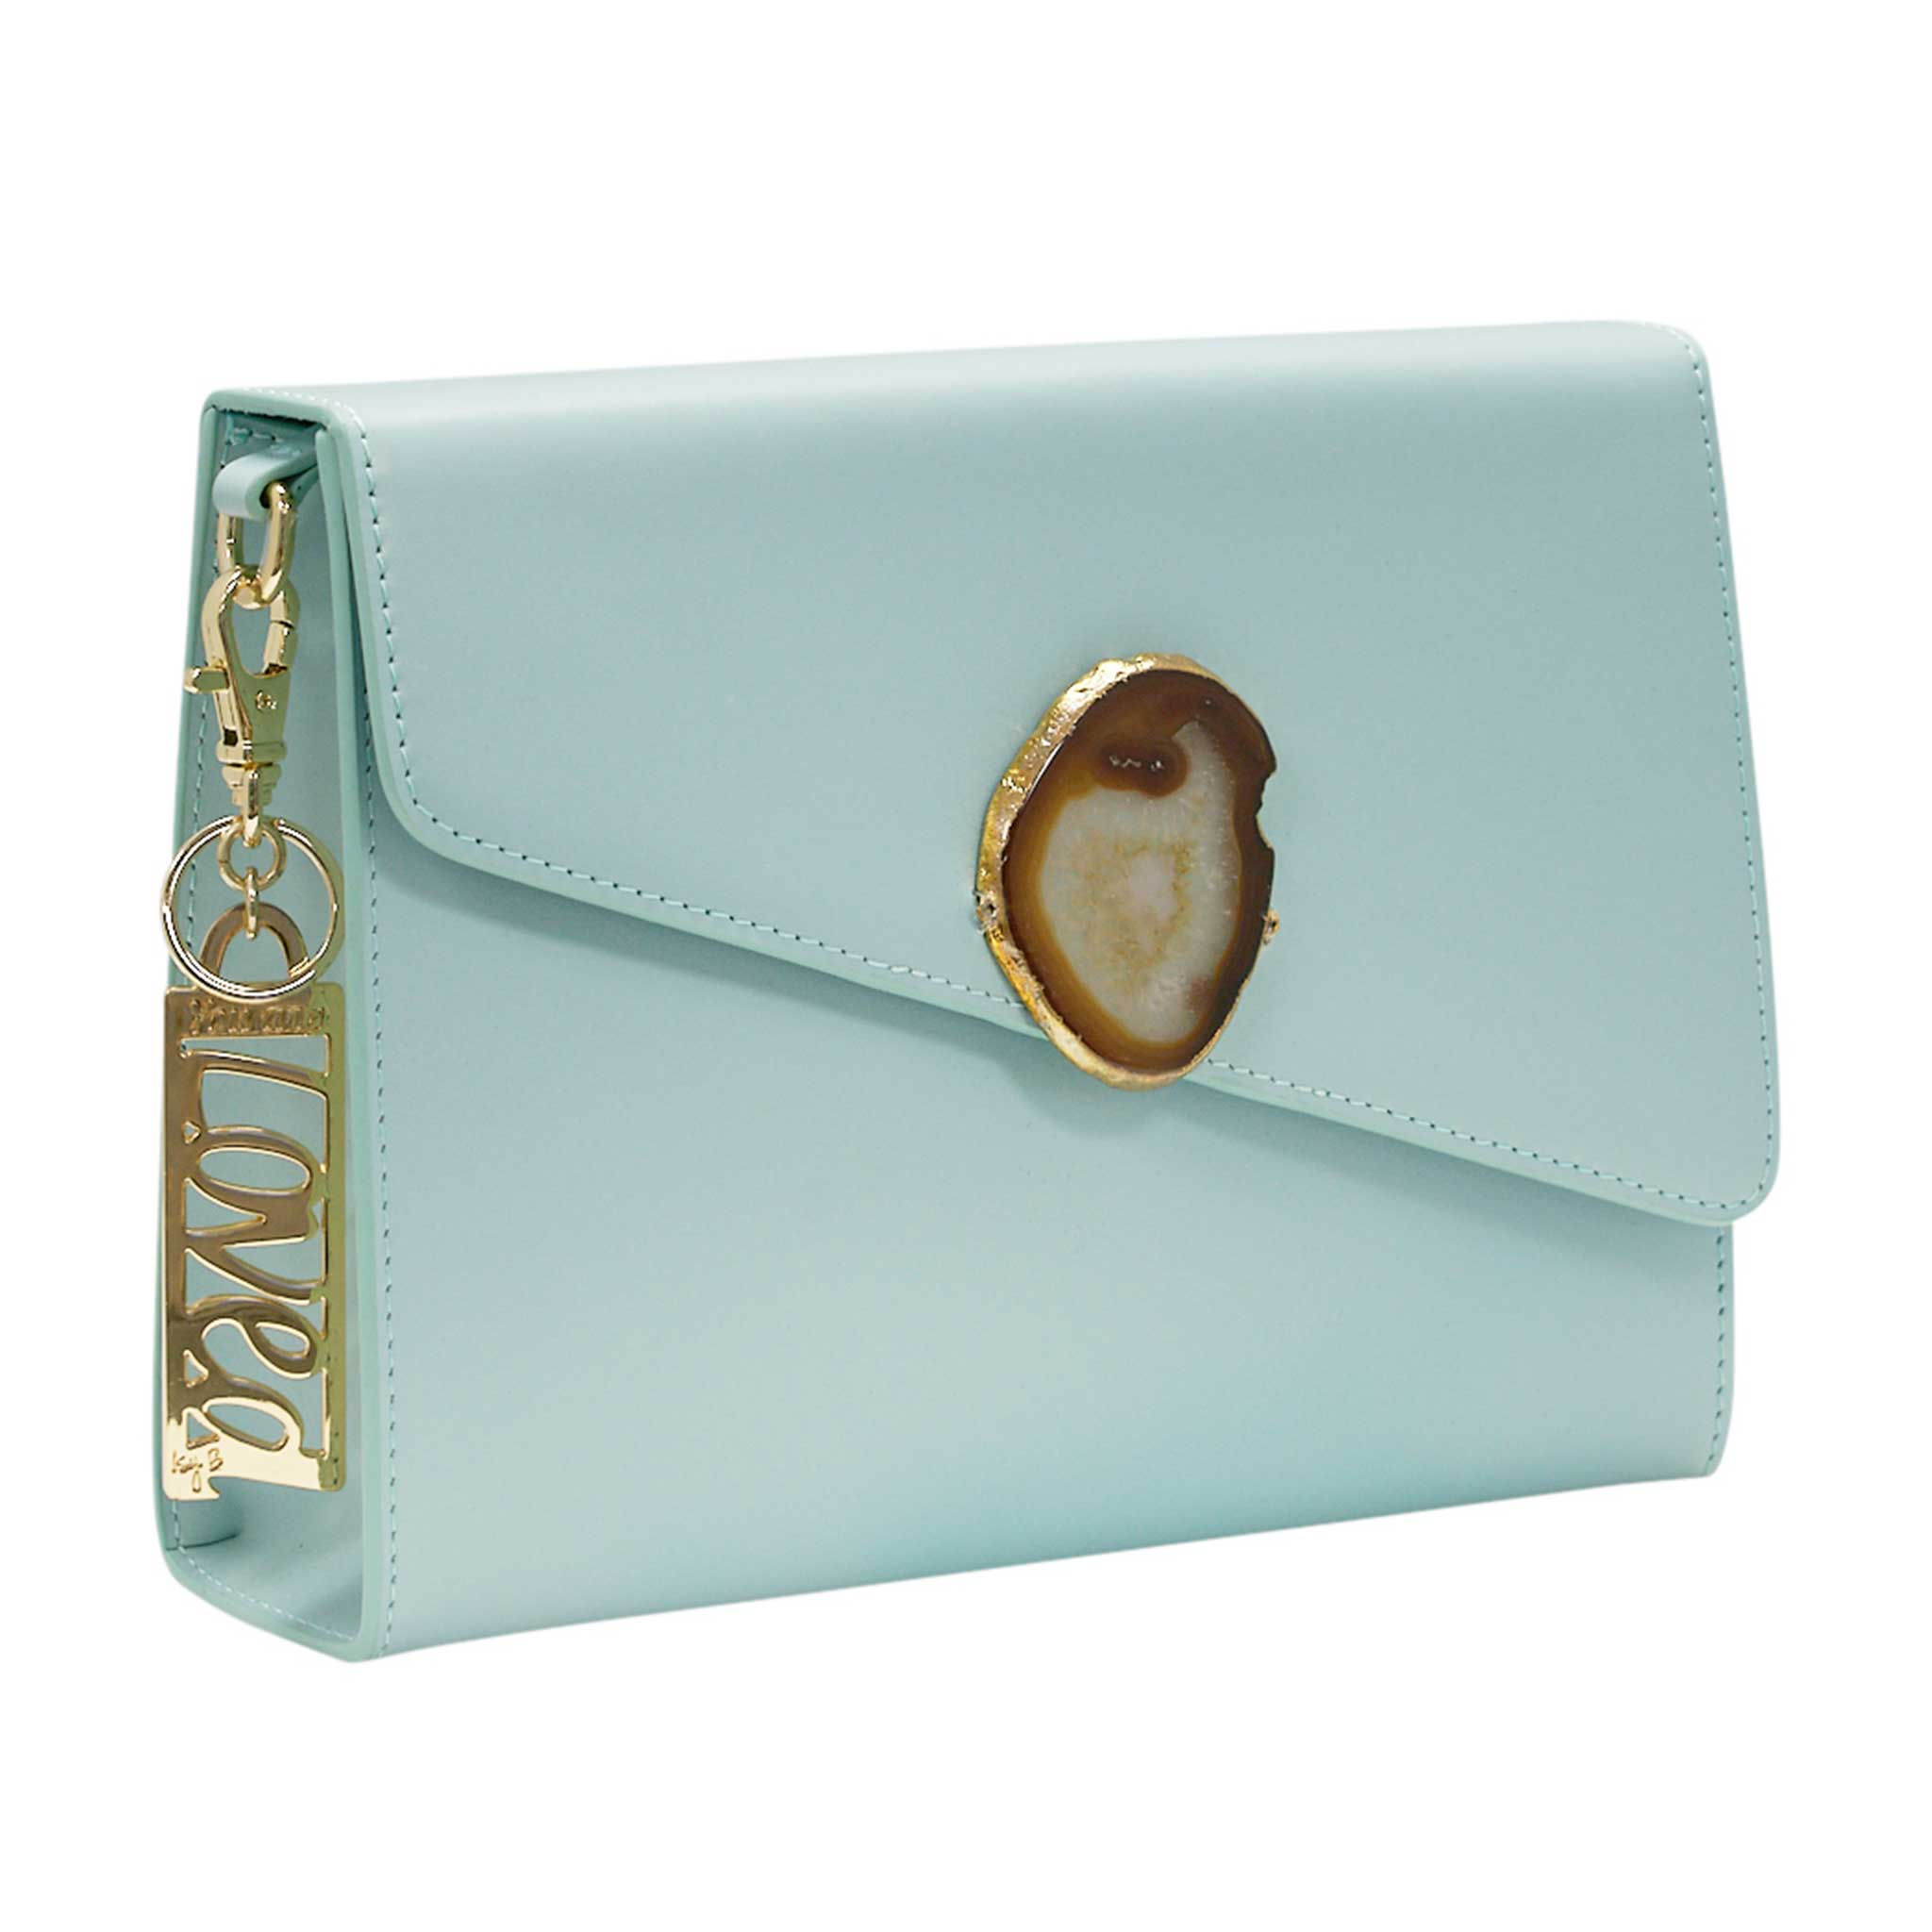 LOVED BAG - MOONSTONE WHITE LEATHER WITH YELLOW AGATE - 1.02.004.013